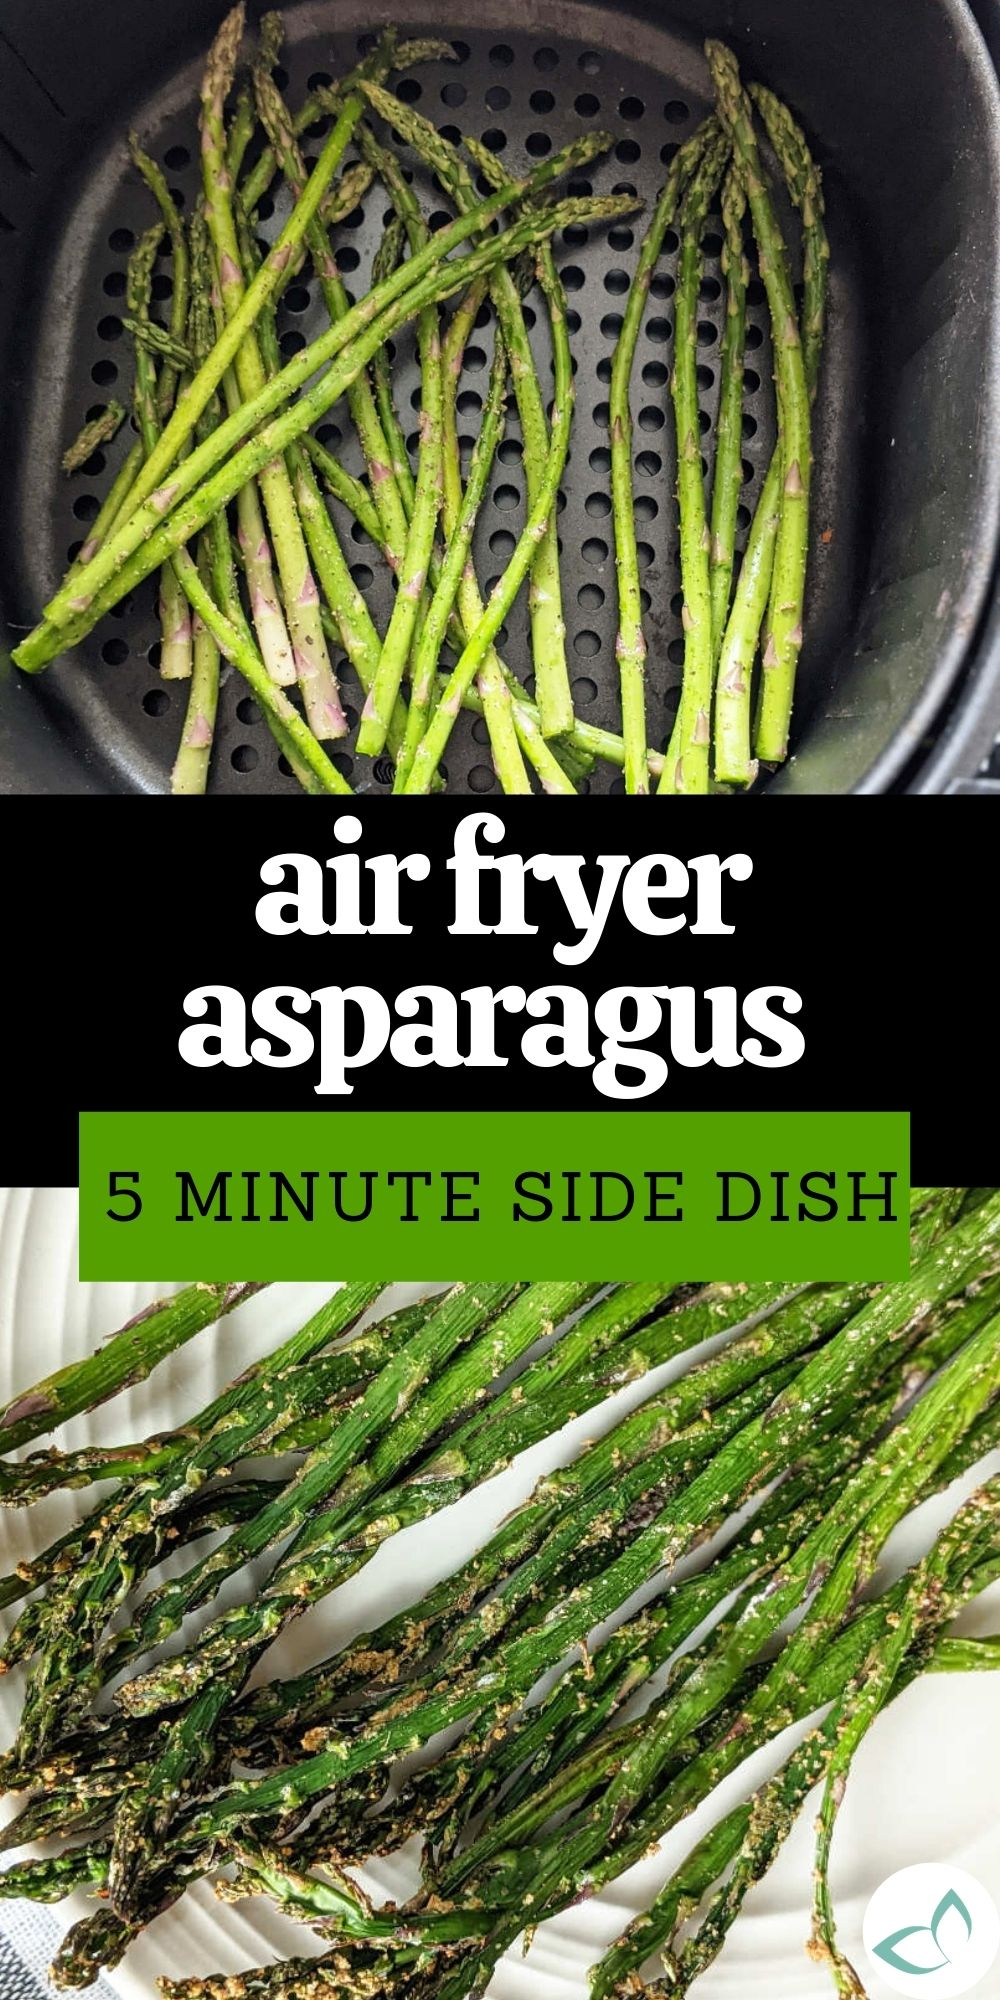 Pin image featuring asparagus in an air fryer basket along with cooked asparagus on a plate